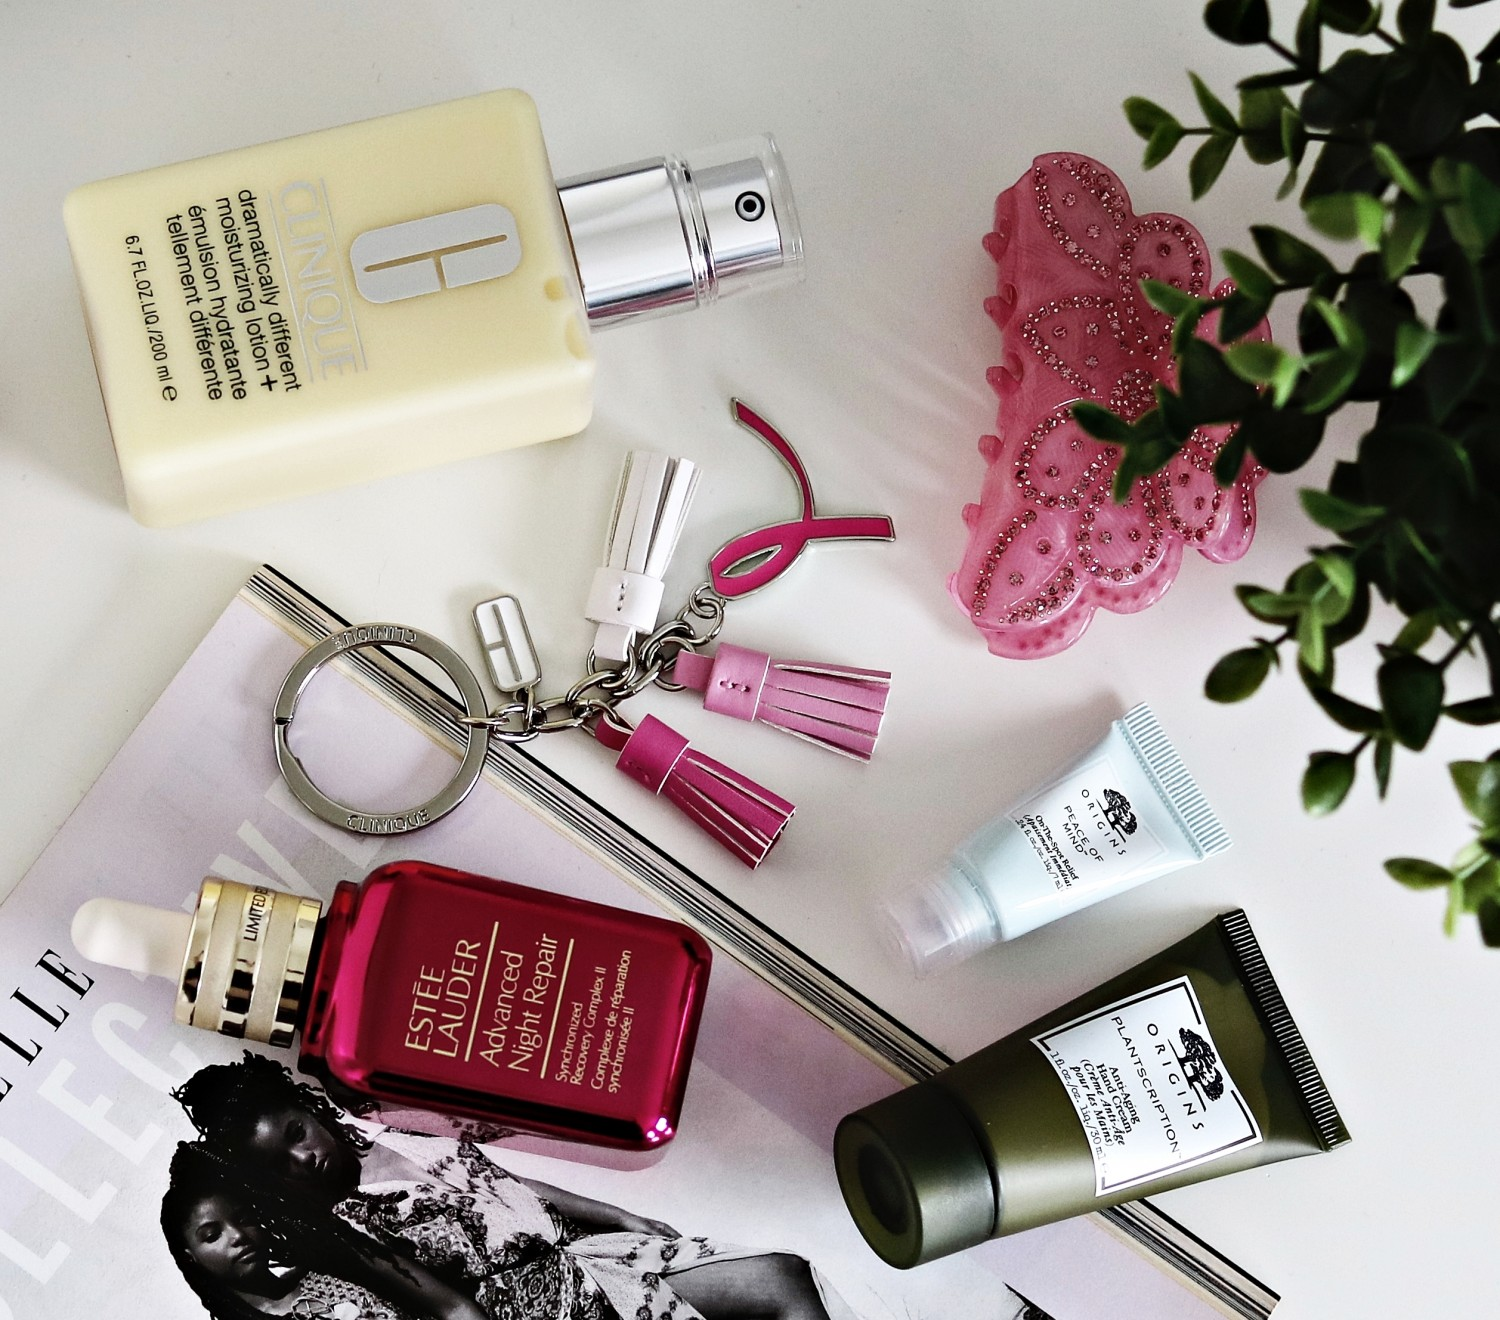 Estée Lauder Time to end breast cancer